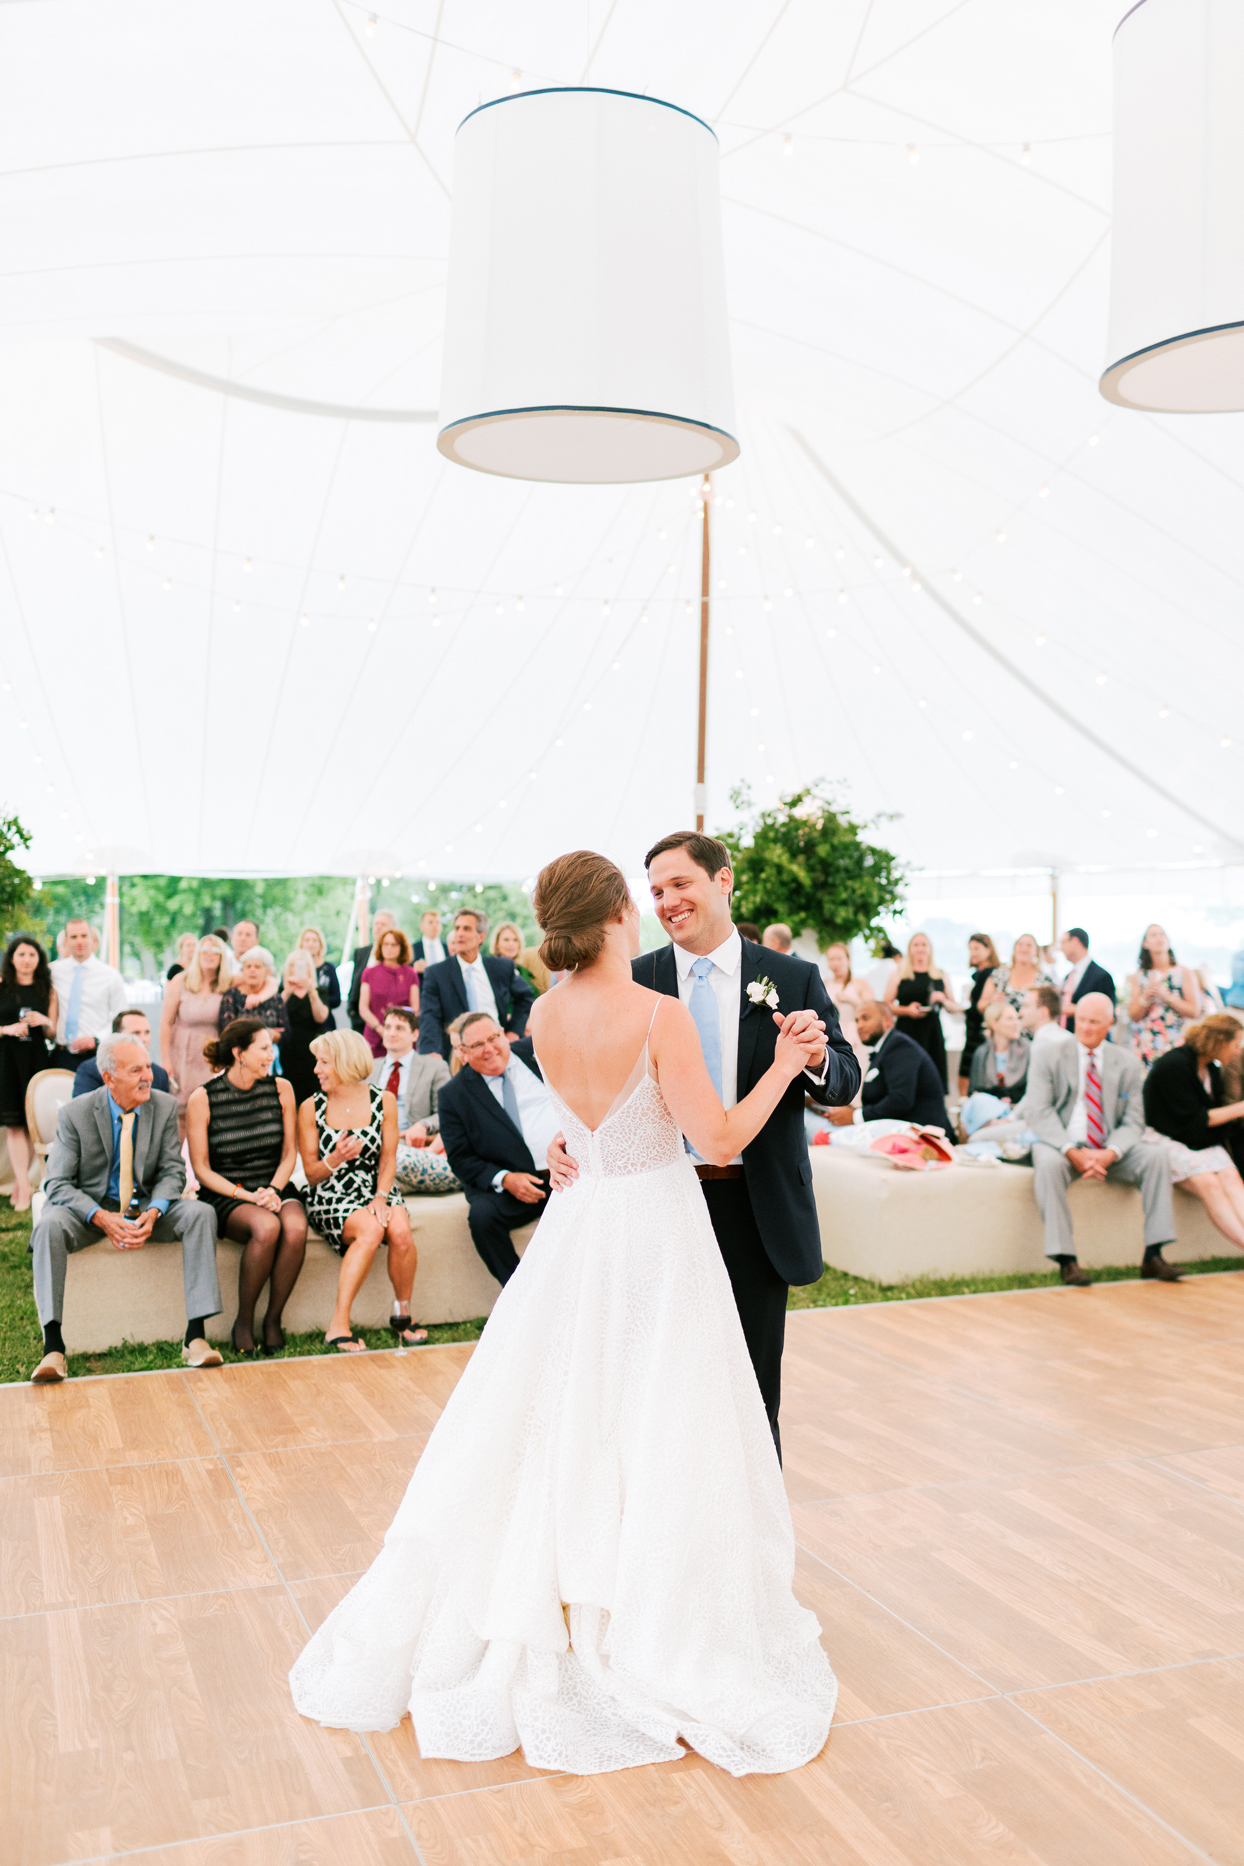 bride and groom first dance on dance floor under large white reception tent